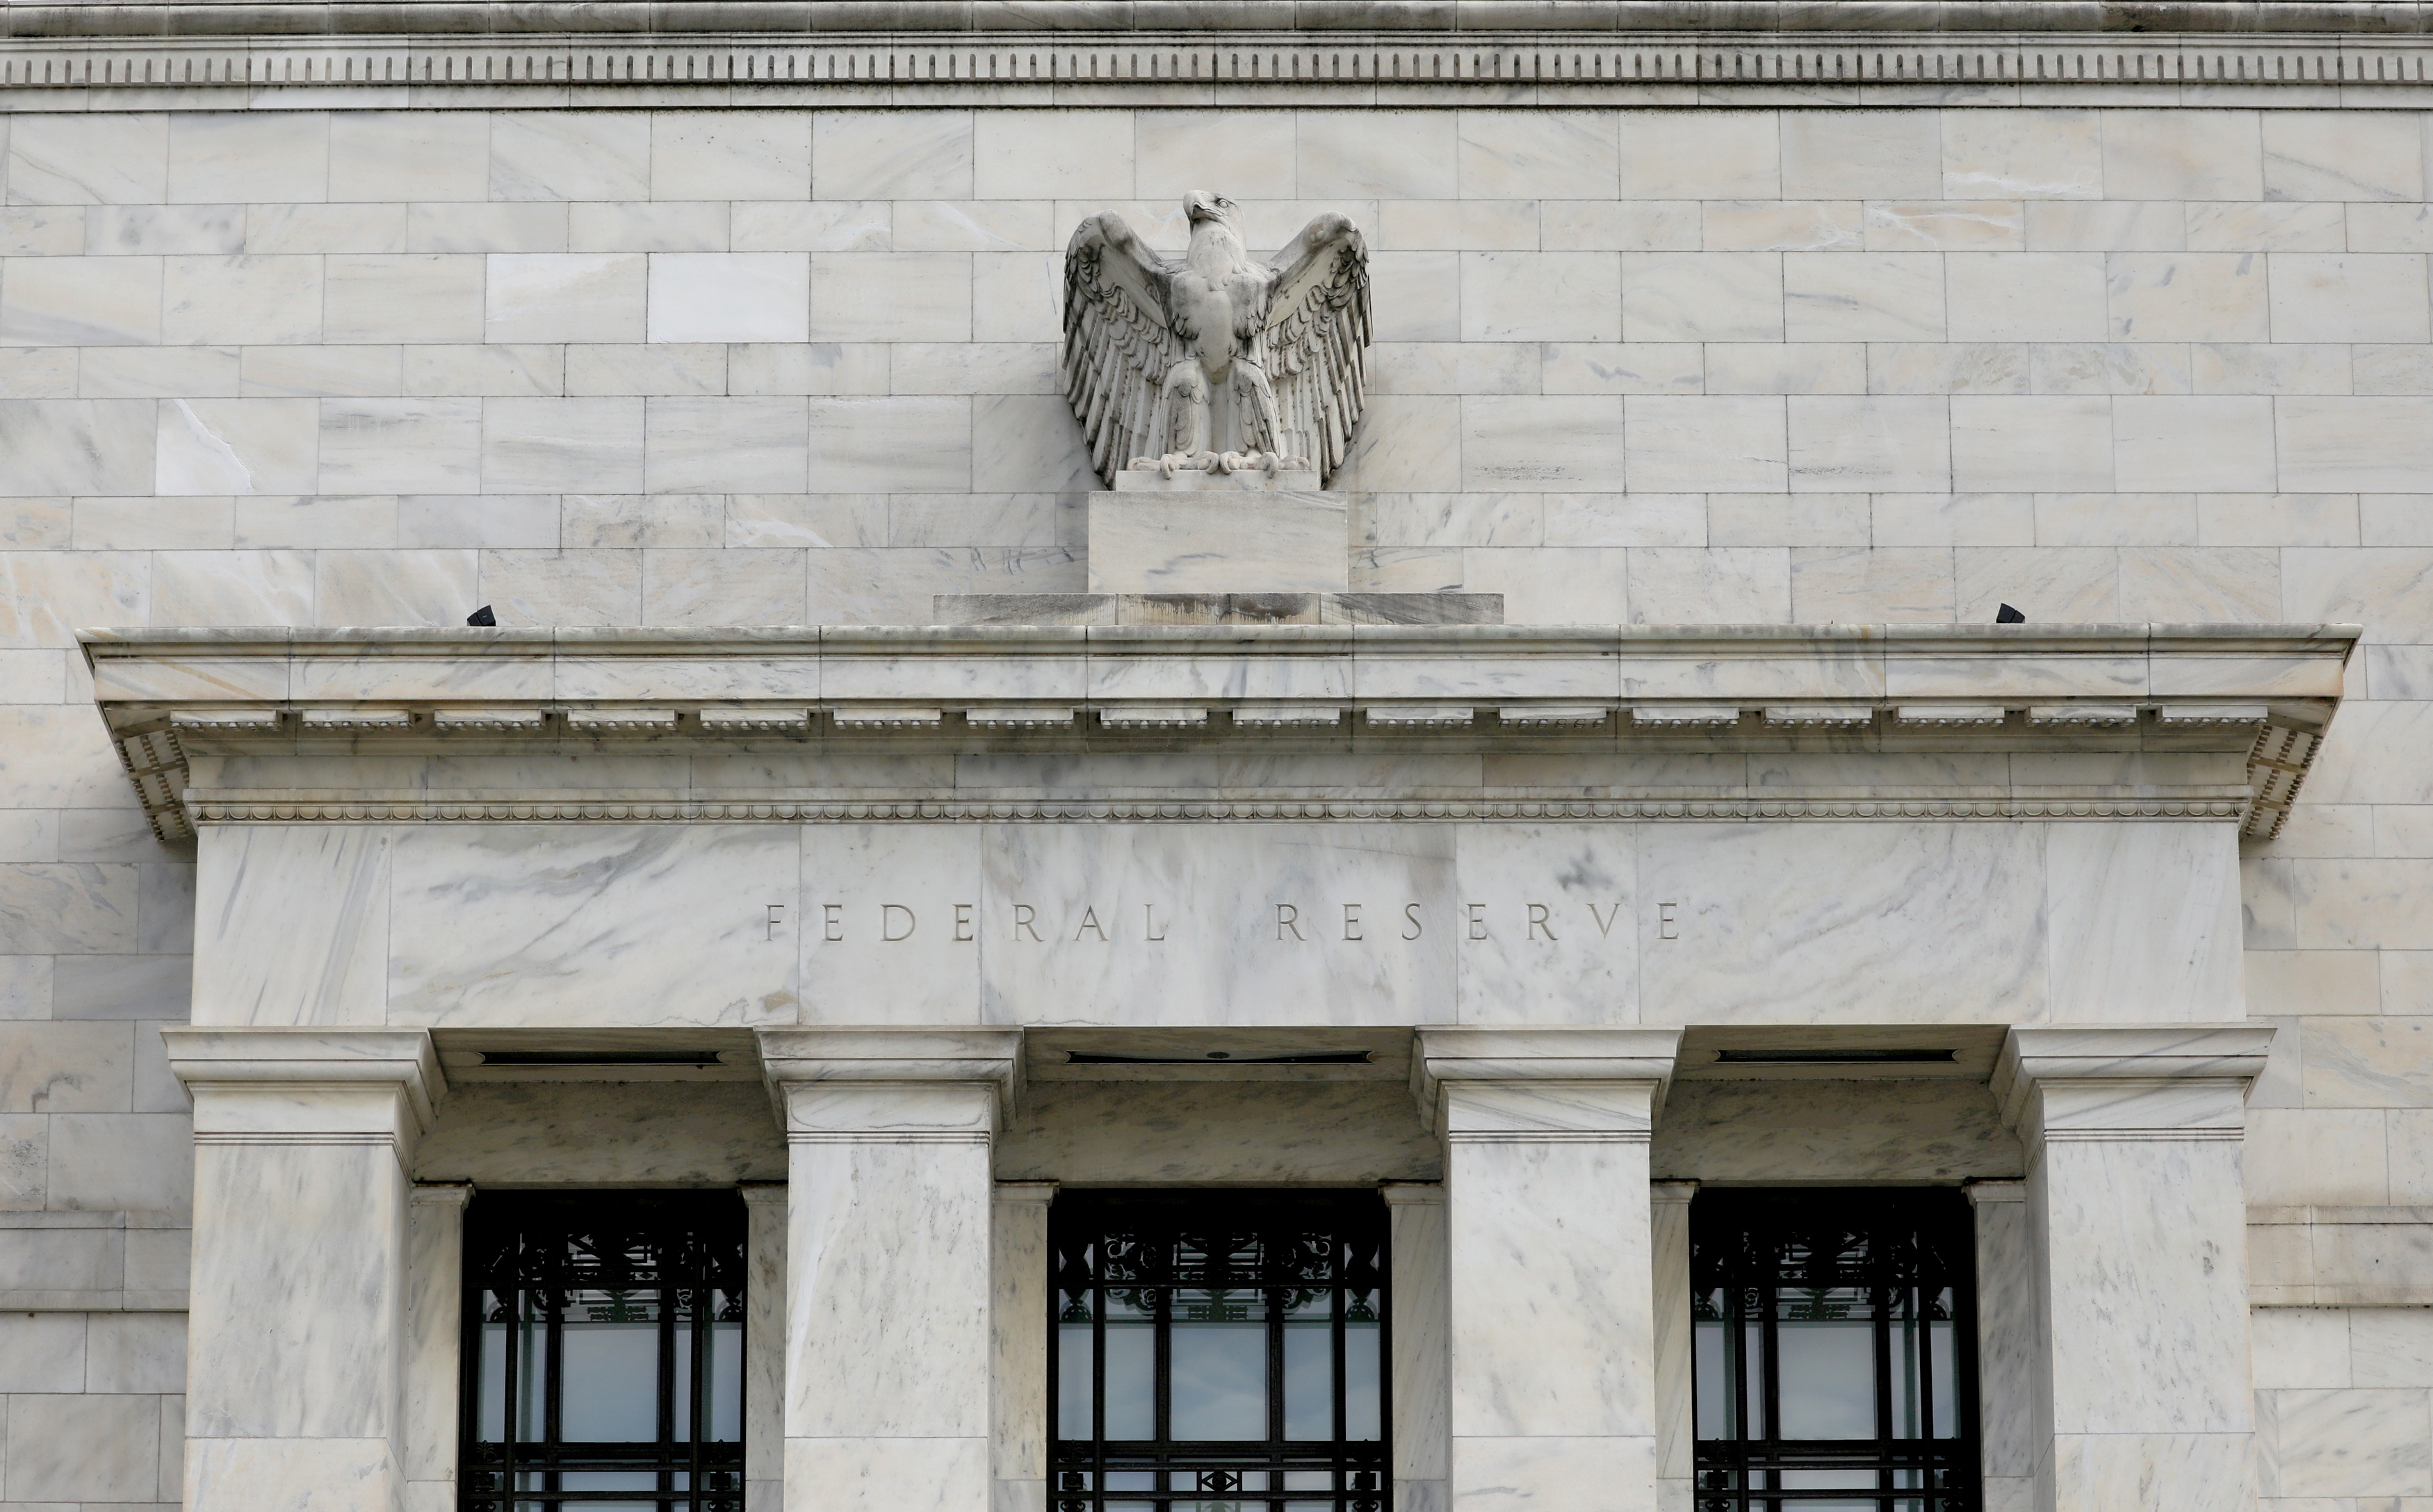 The Federal Reserve building is pictured in Washington, DC, U.S., August 22, 2018. REUTERS/Chris Wattie